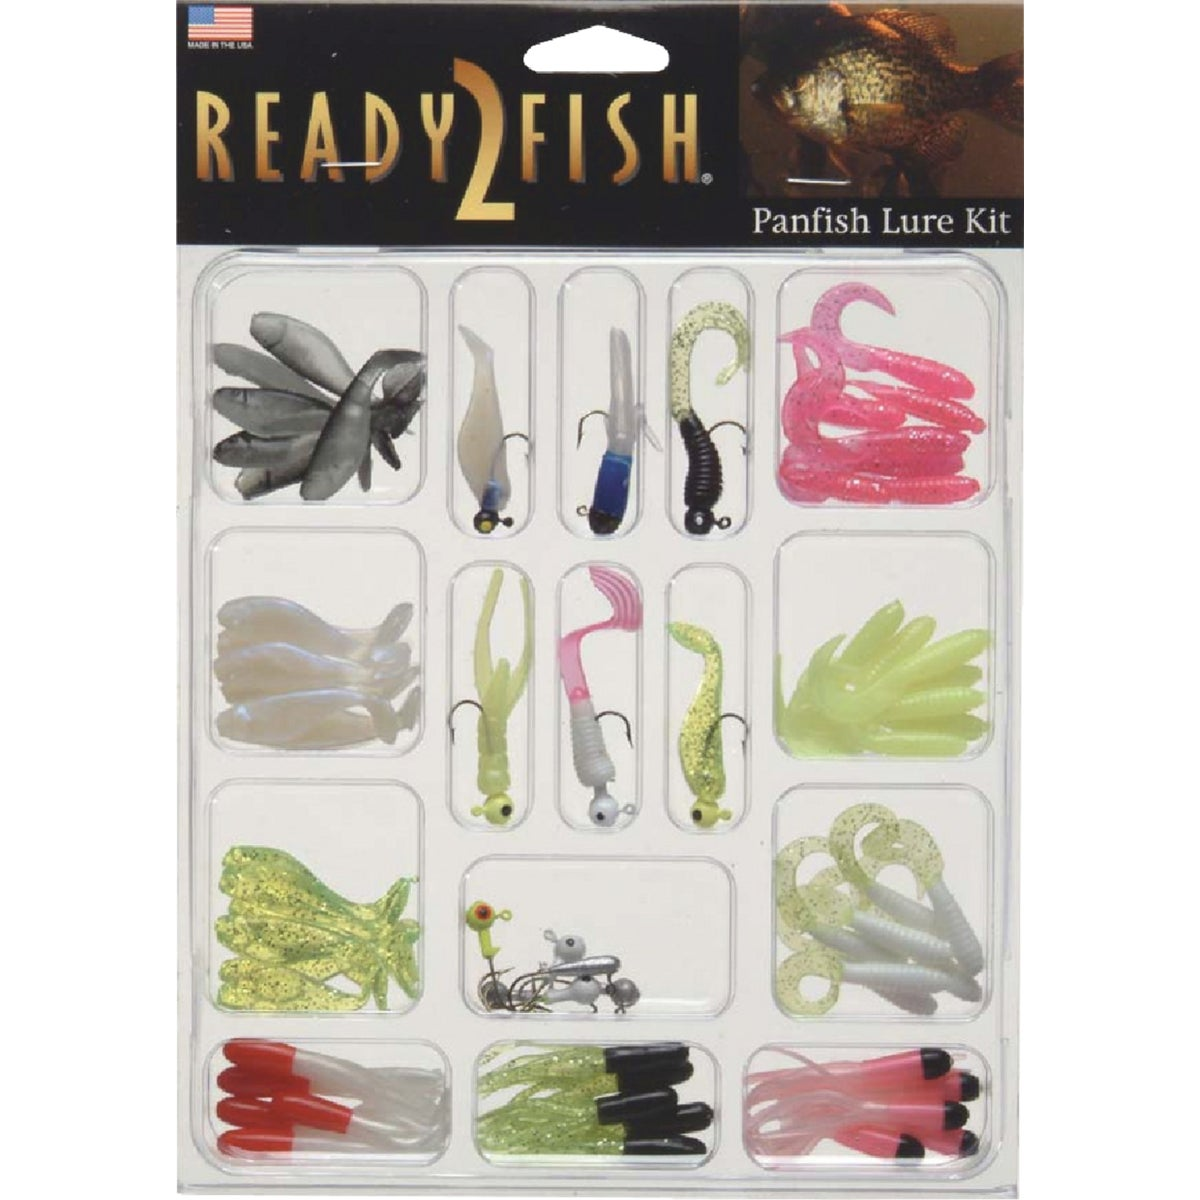 R2F PANFISH LURE KIT - R2FK-PANFSH by South Bend Sptg Good